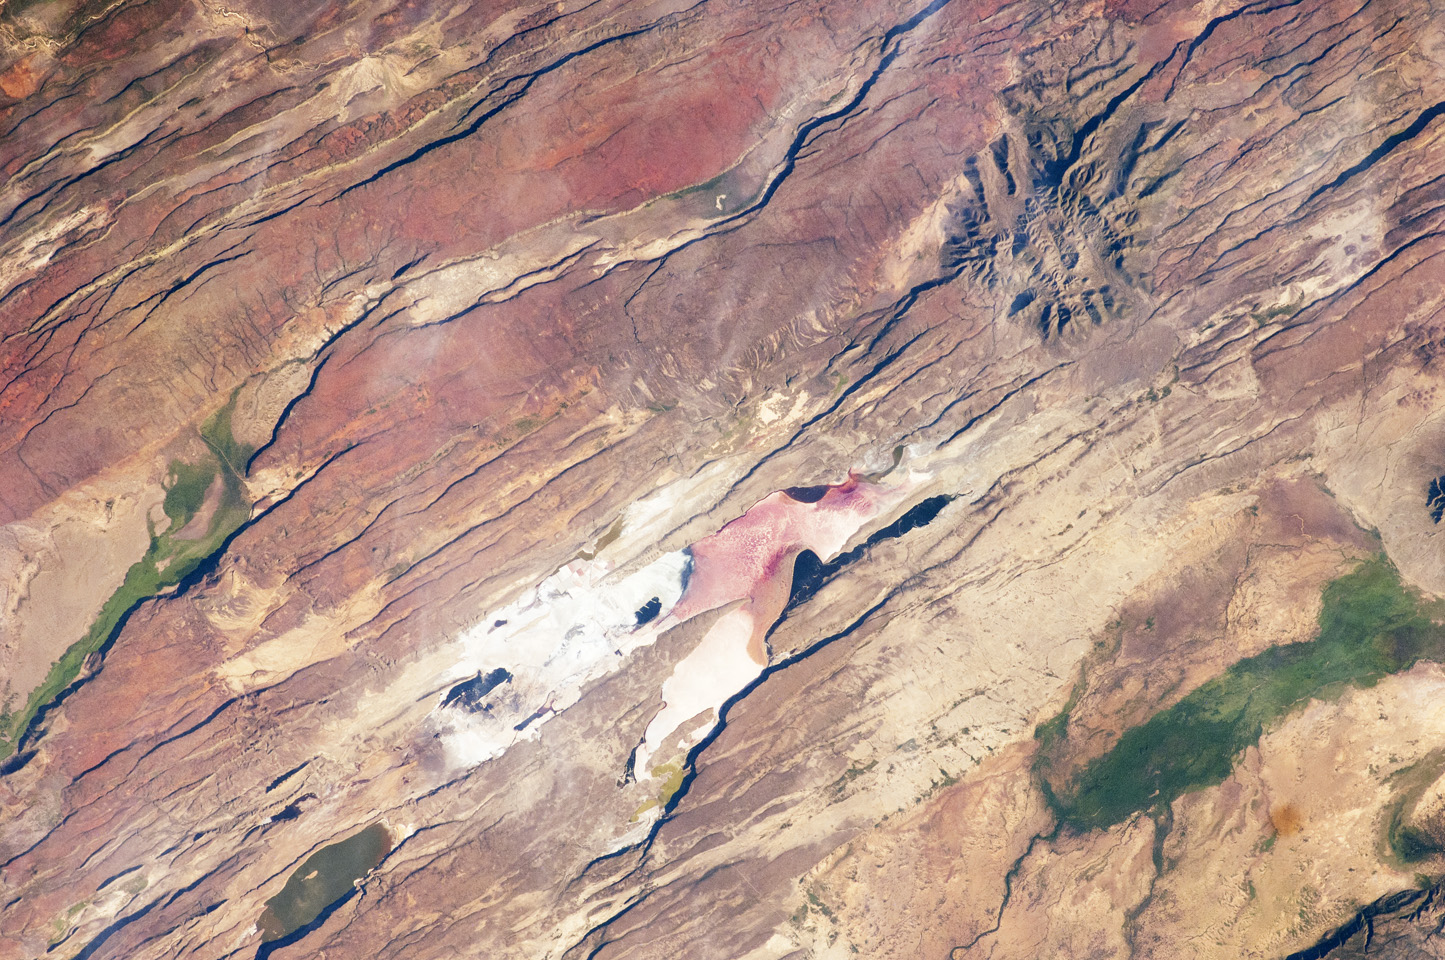 Photograph from space of the East African Rift Valley.